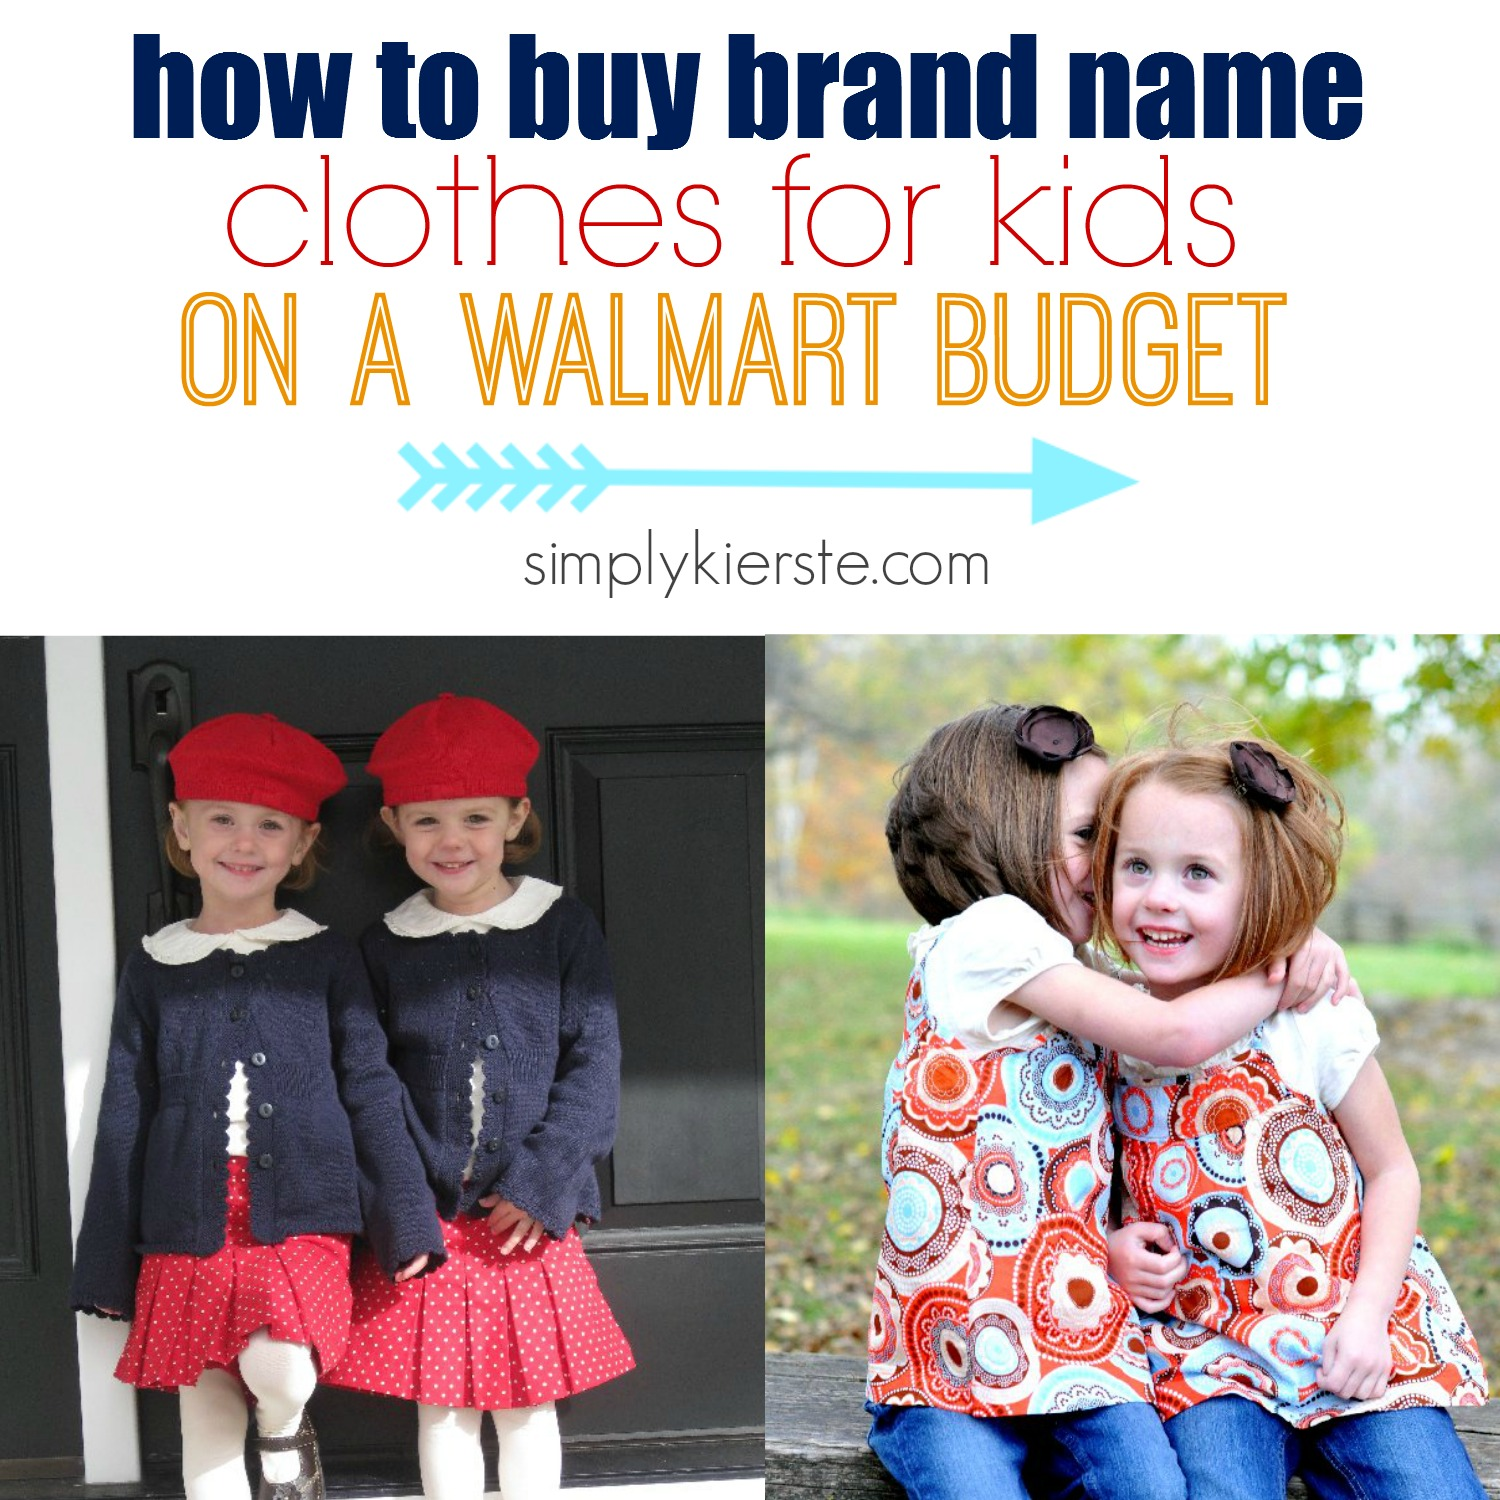 823146f7d How to Buy Brand Name Clothes for Kids On a Walmart Budget ...